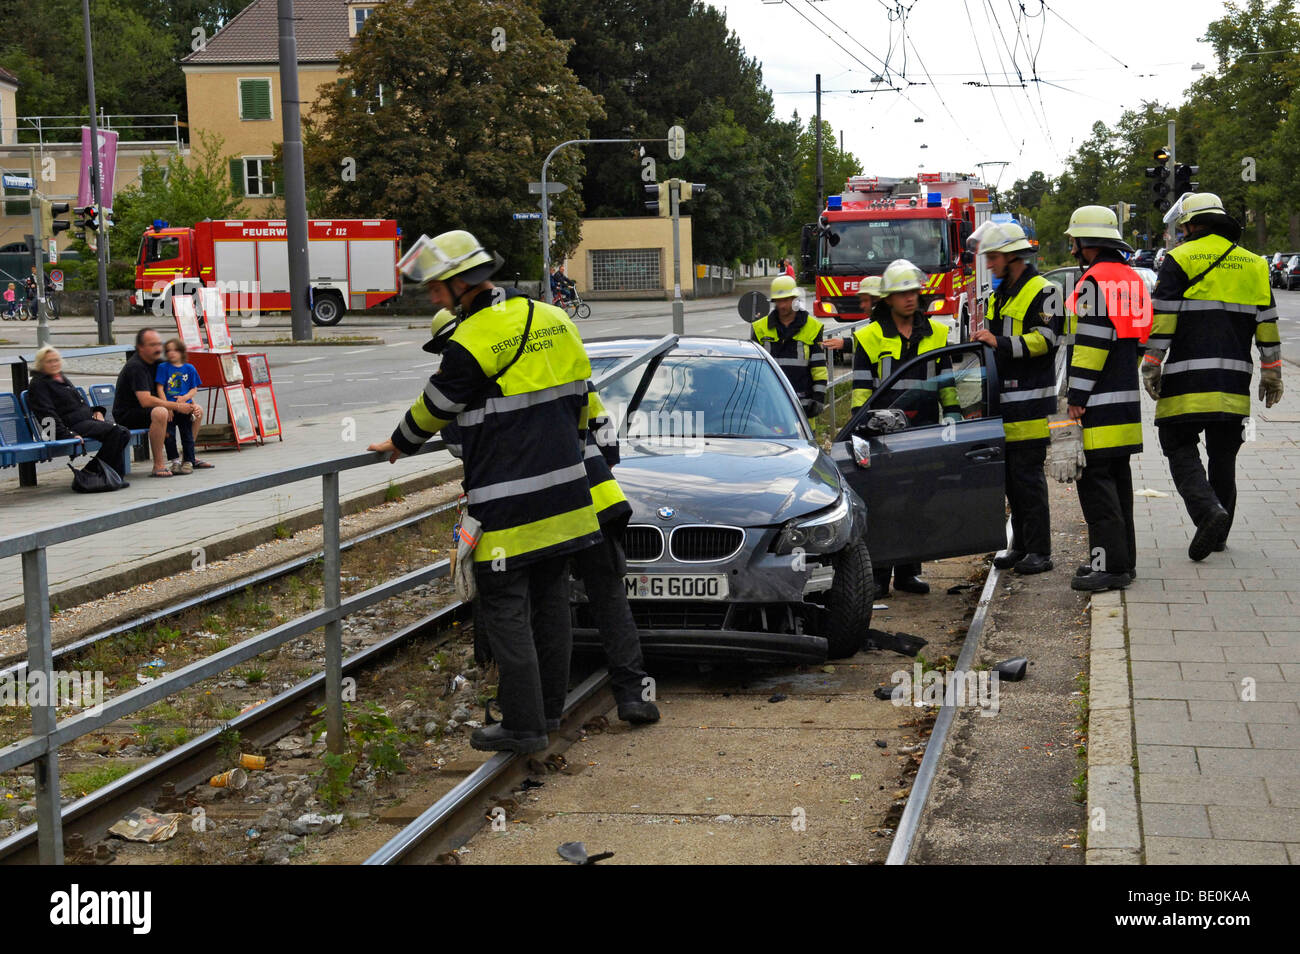 Accident, car on tram tracks, license plate changed, Munich, Bavaria, Germany, Europe - Stock Image